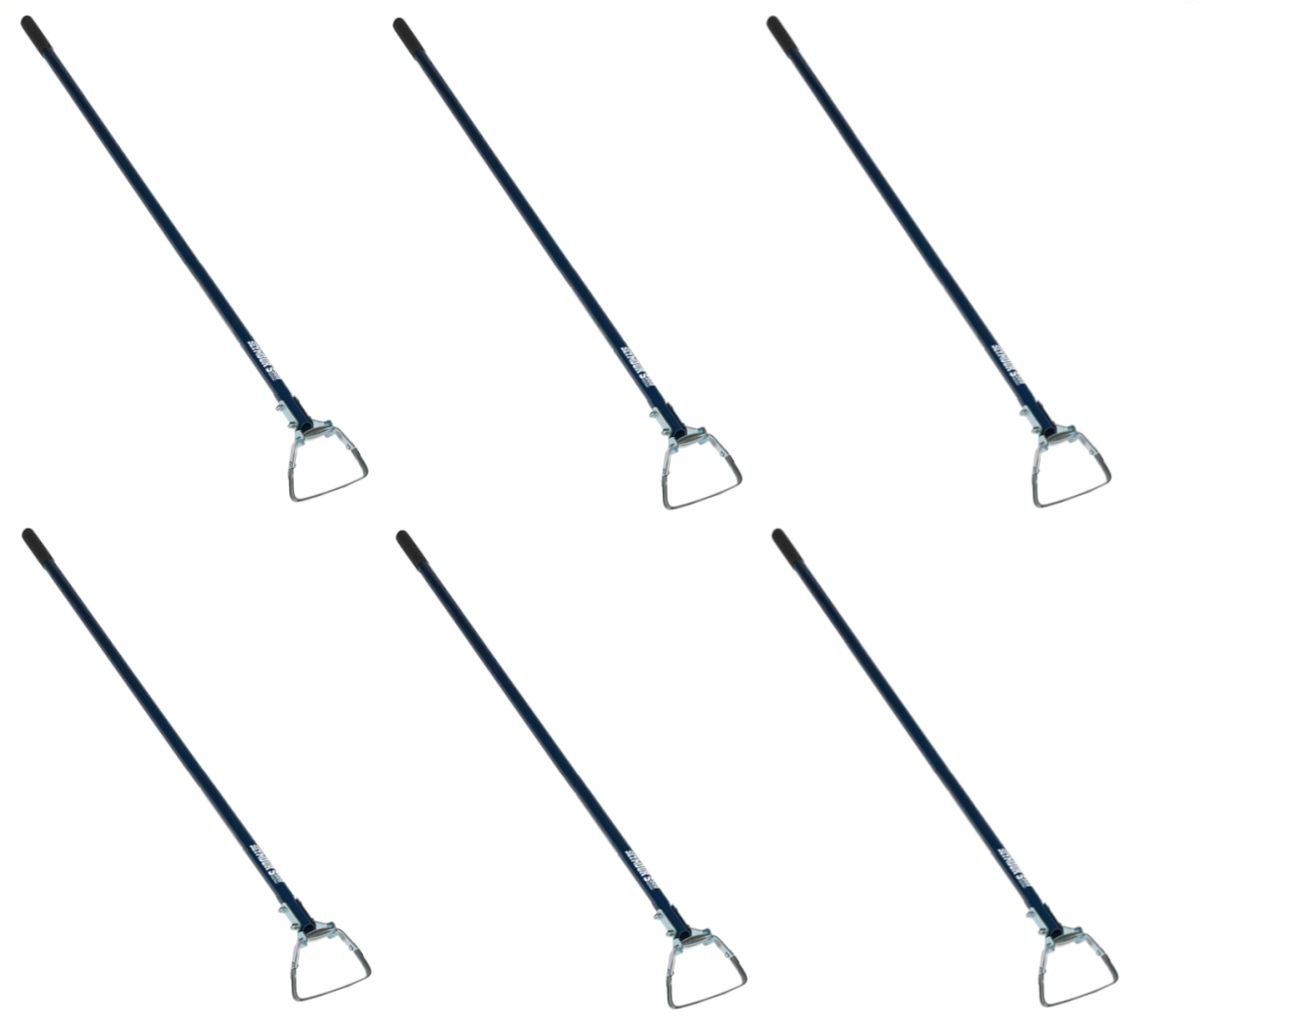 Pack of 6 - Midwest Rake 40100 Garden Loop Hoe by Midwest Rake